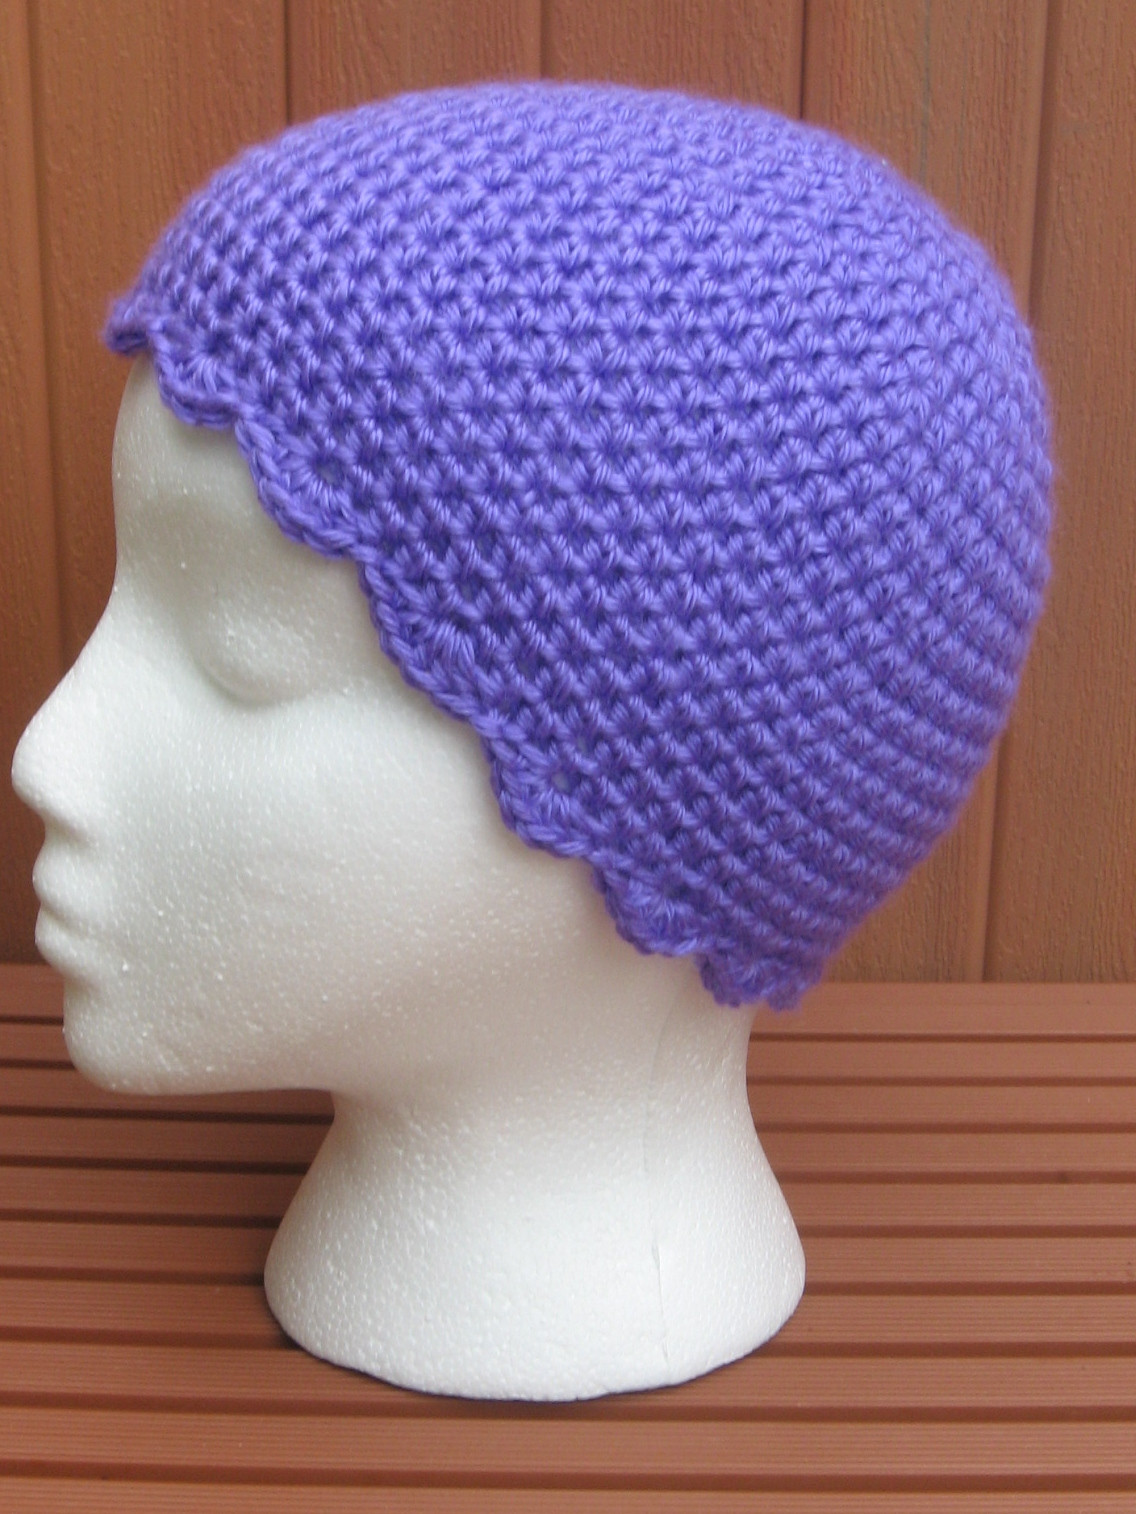 Chemo Hat Patterns Lovely Crochet Projects Crochet Chemo Sleep Cap Of Superb 48 Models Chemo Hat Patterns